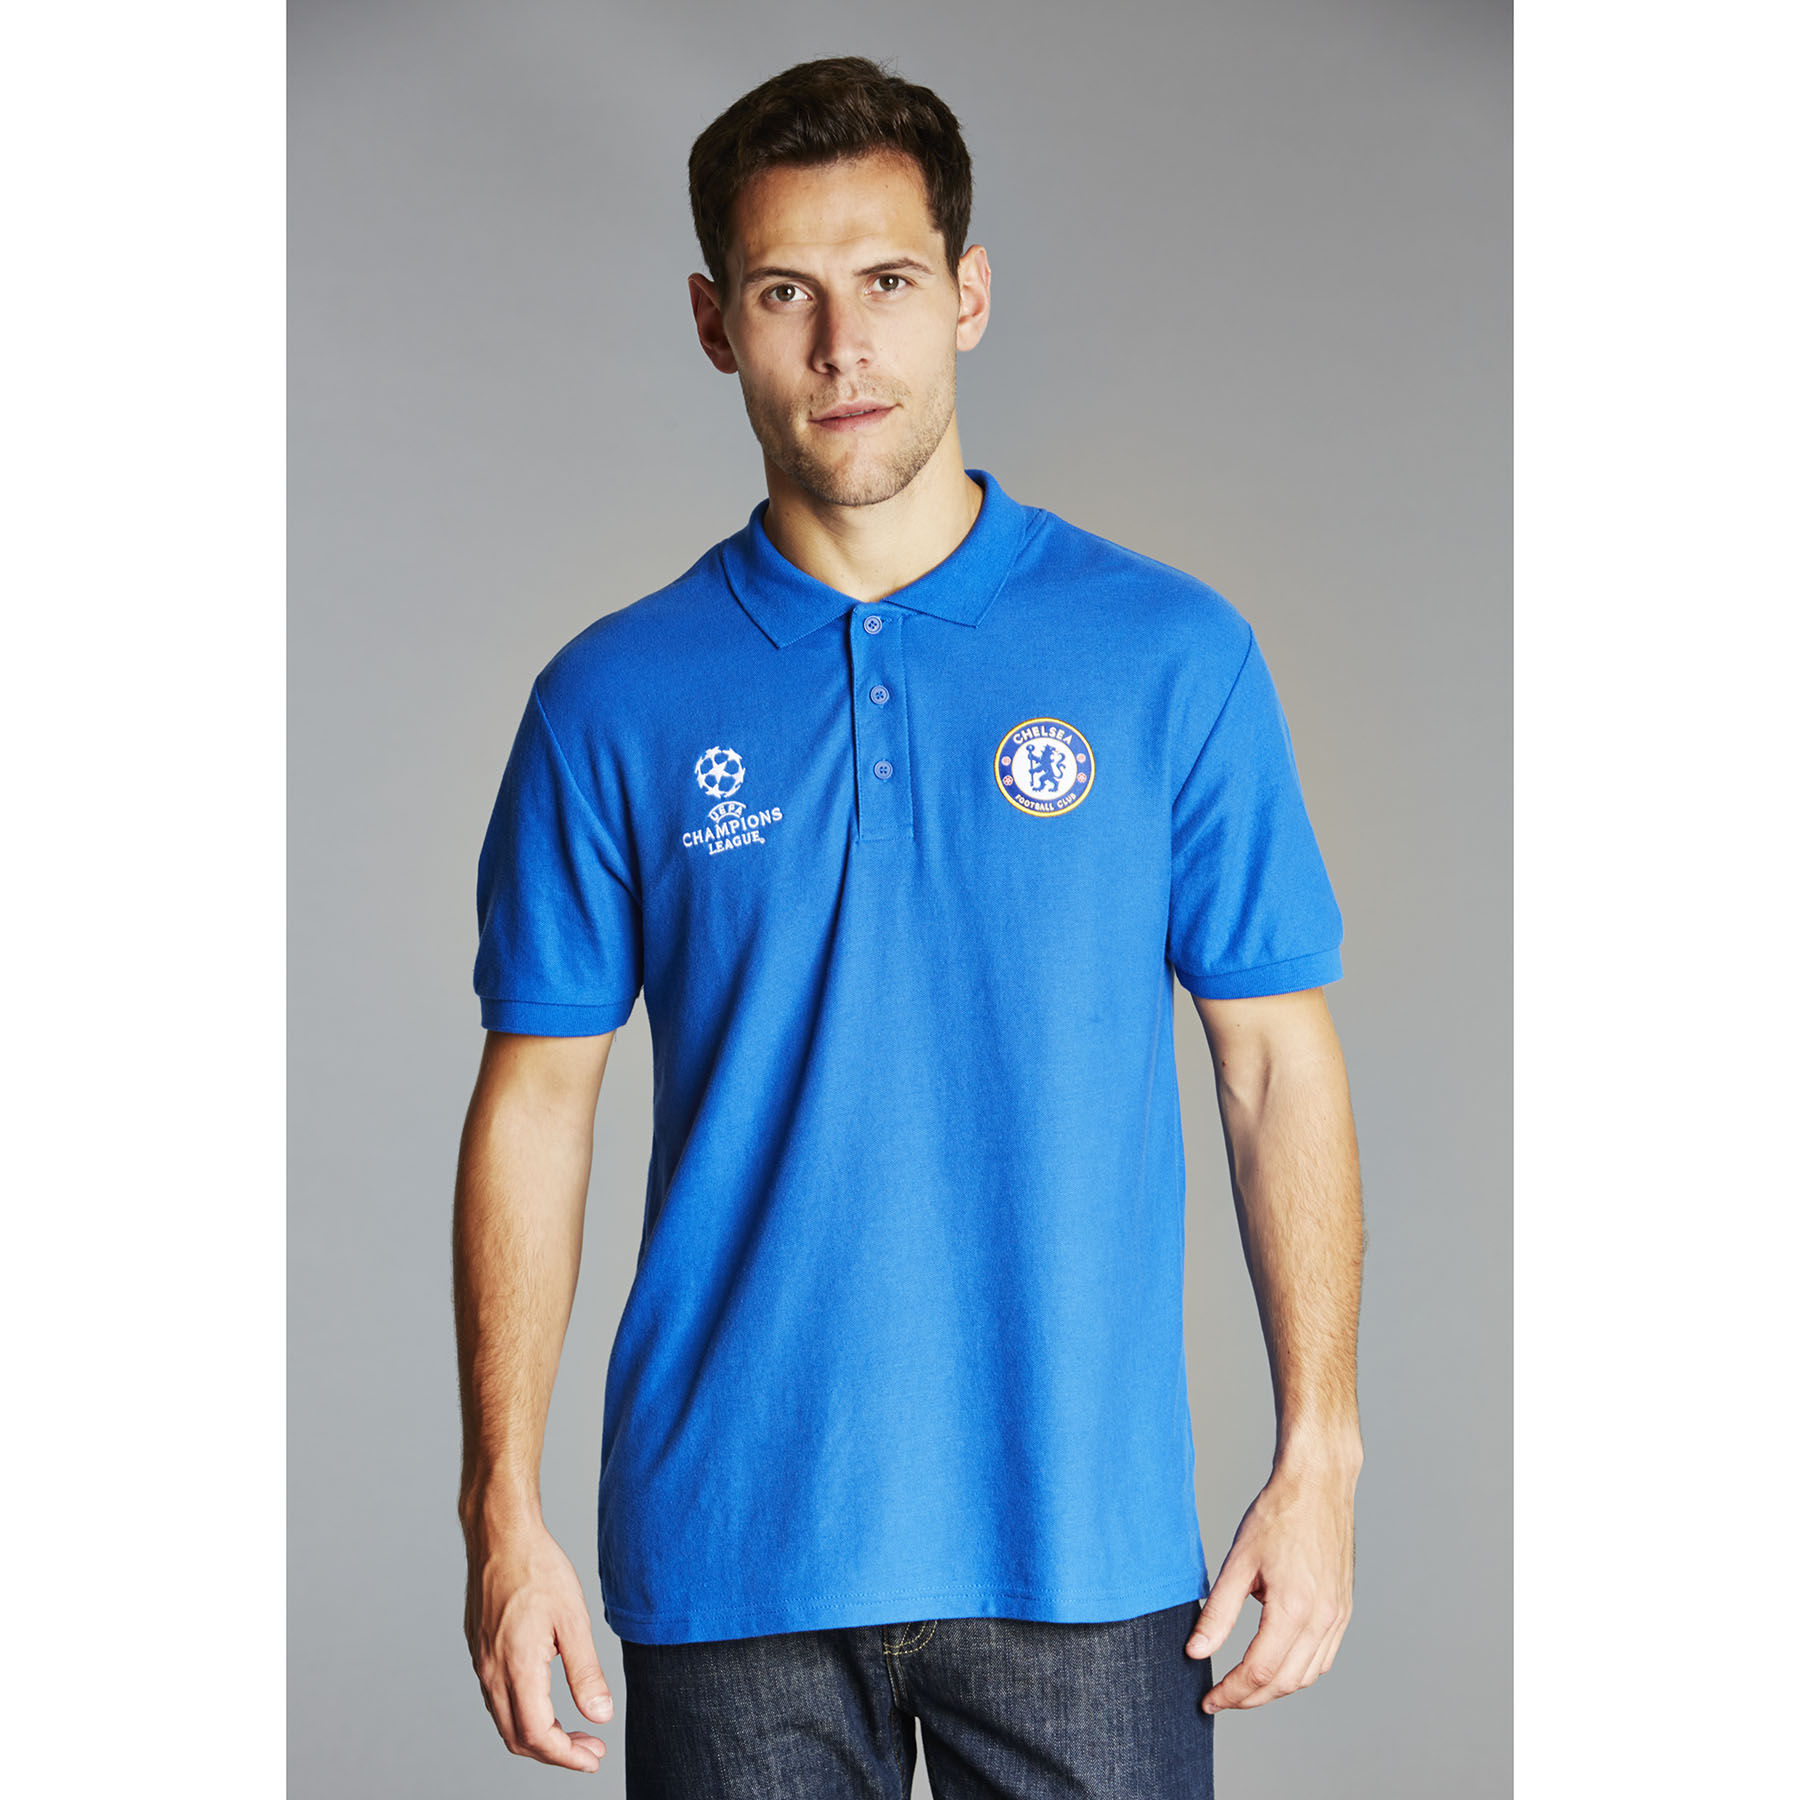 Chelsea UEFA Champions League Polo Shirt - Royal - Mens